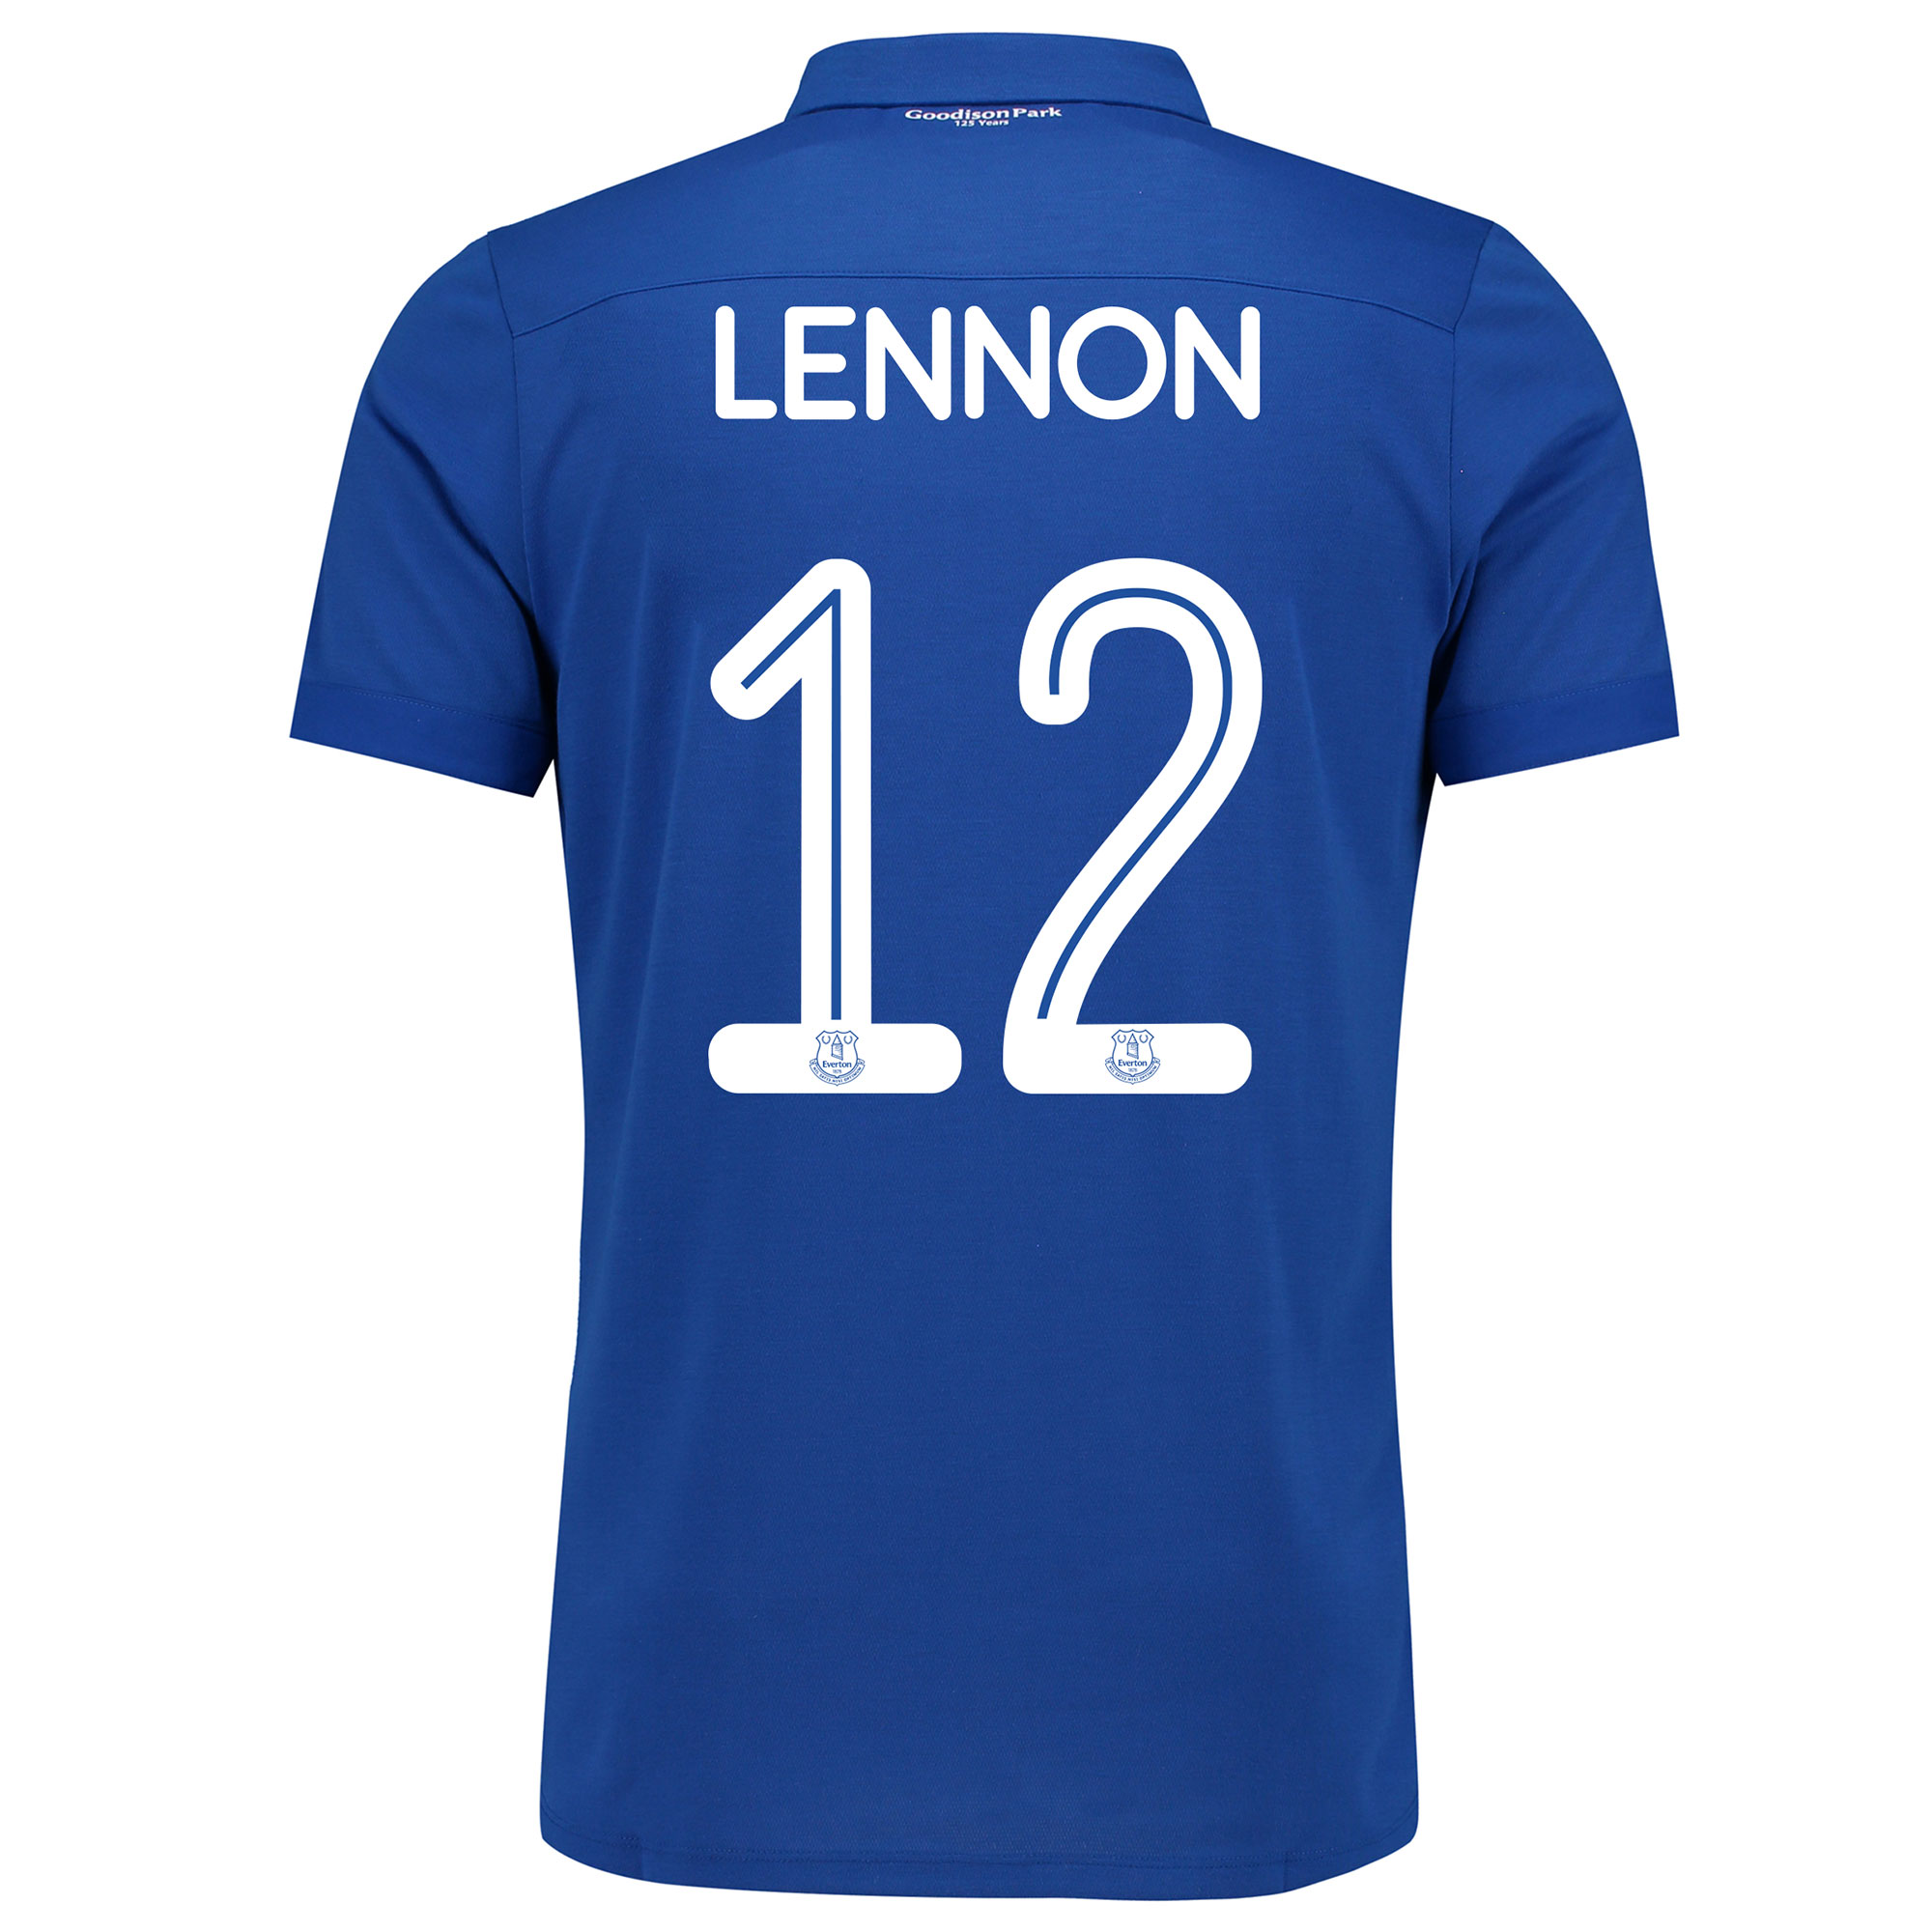 Image of Everton Commemorative Shirt with Lennon 12 printing